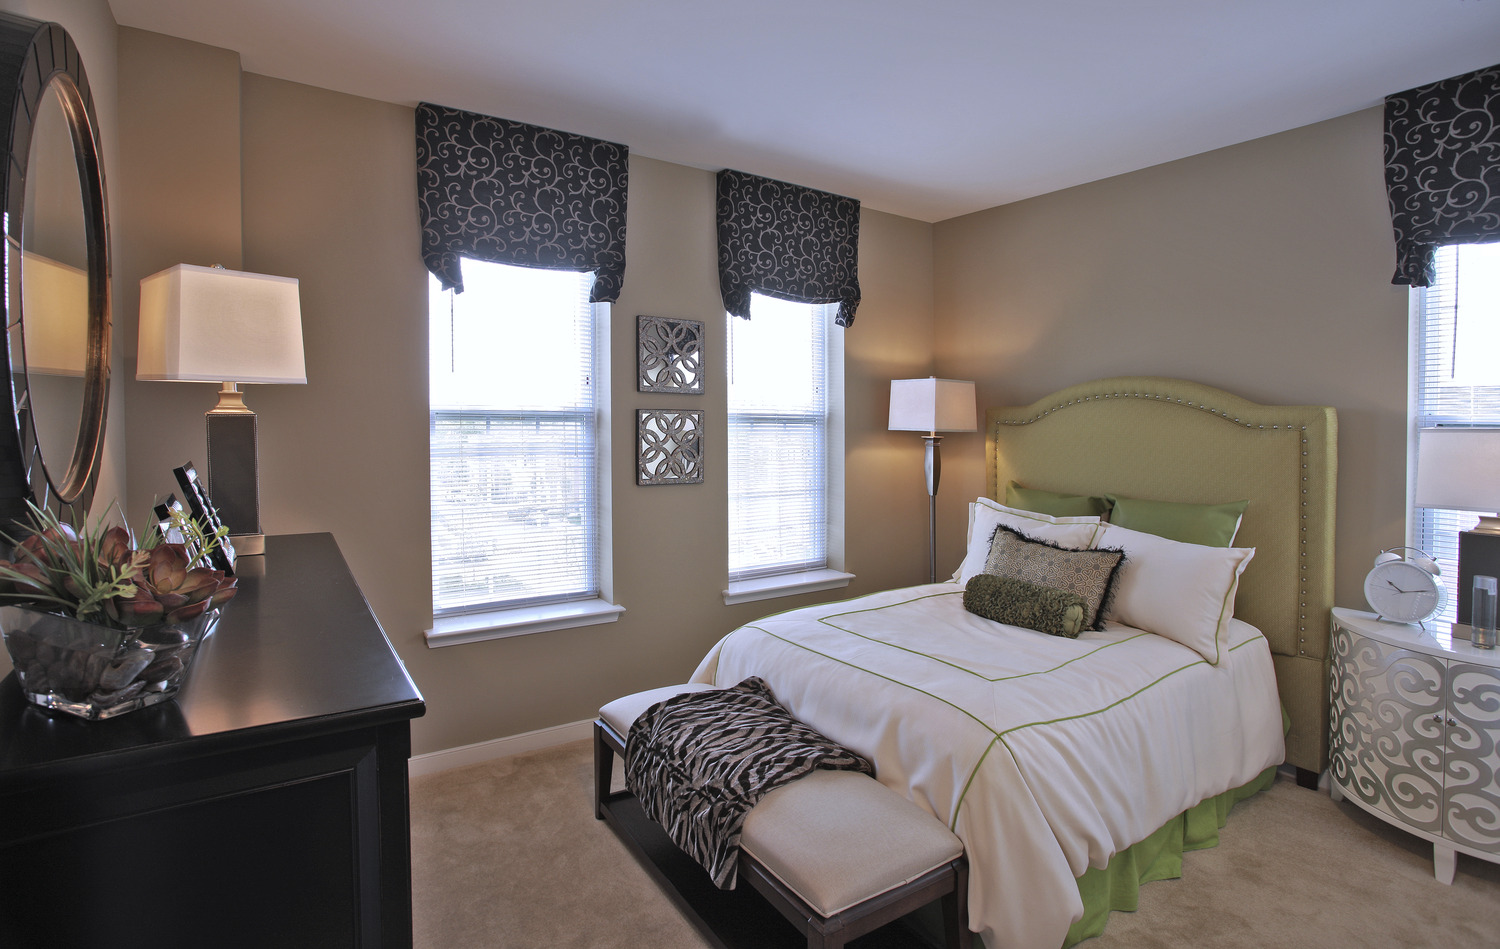 CBG builds The Enclave at Emerson, a 164 Luxury Rental Townhomes and Apartments in Laurel, MD - Image #4